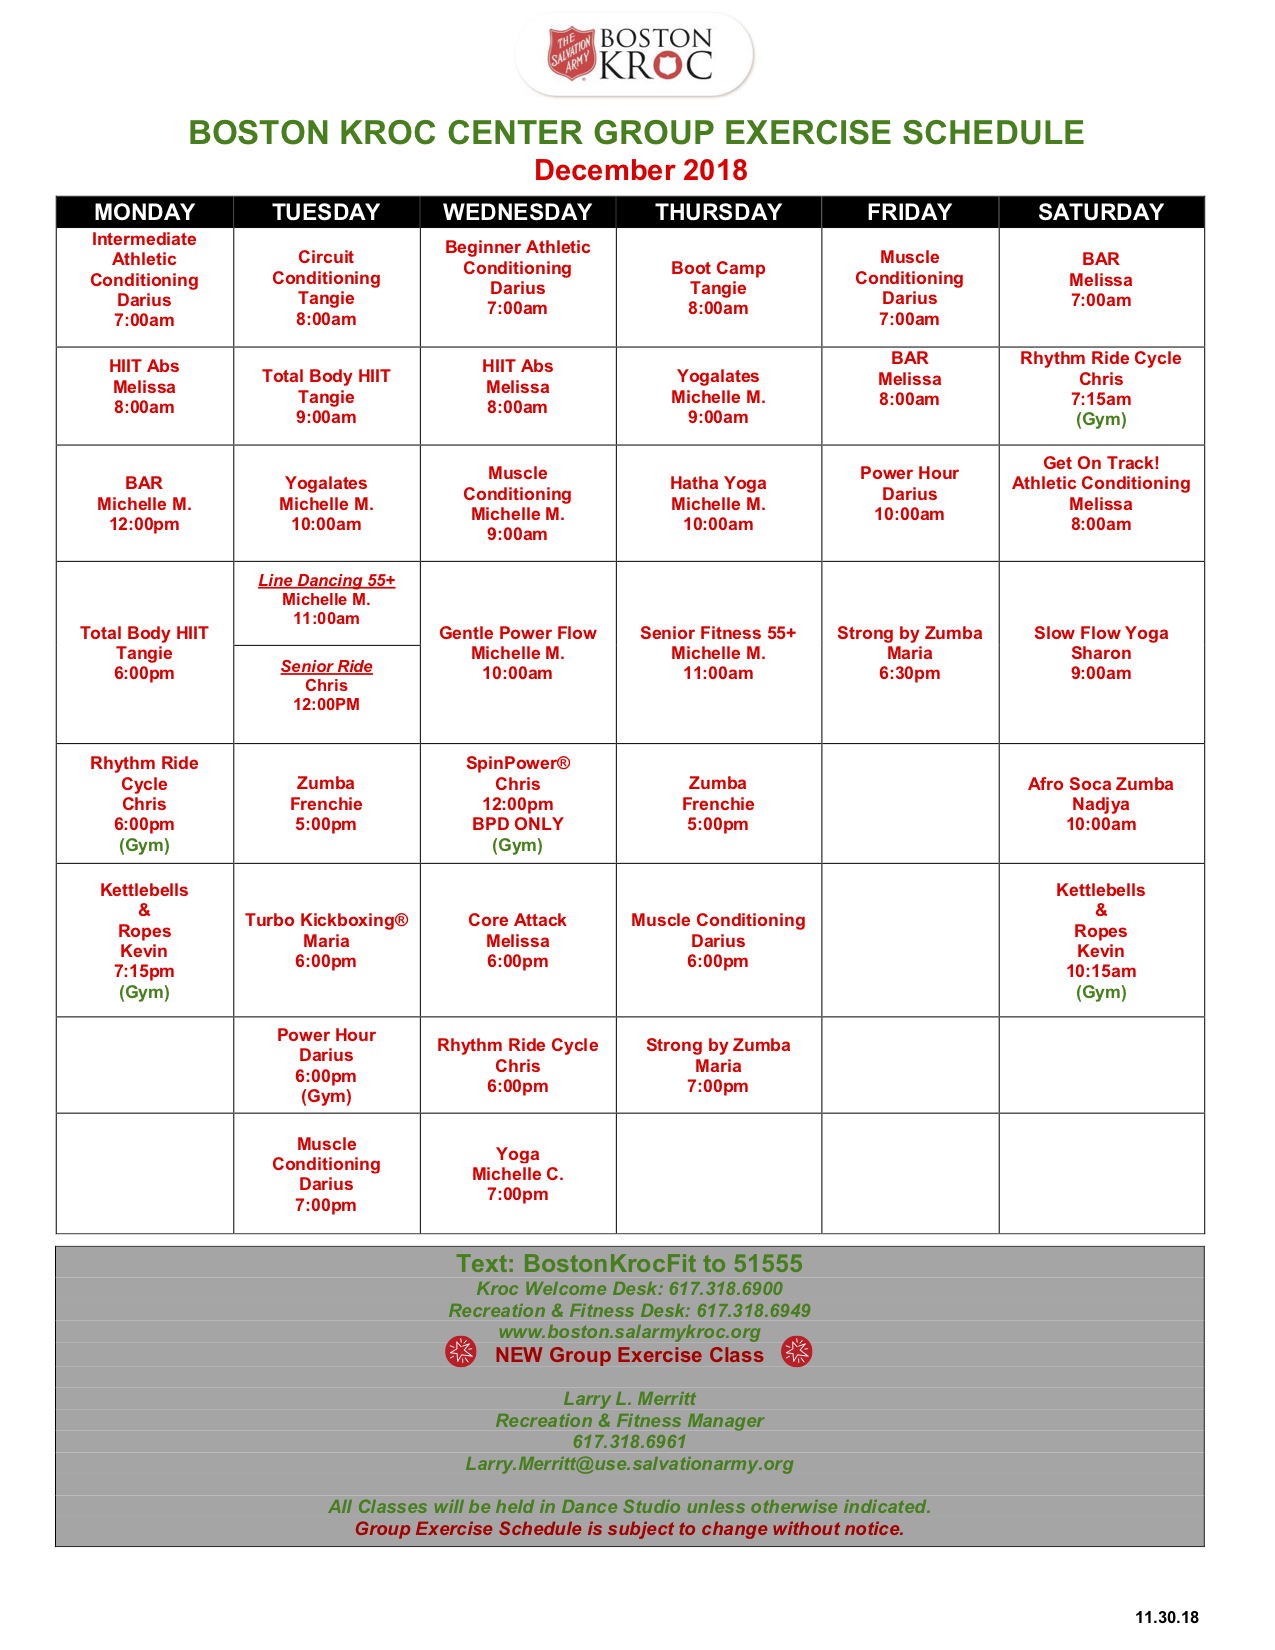 Kroc Corps Community Center Boston Fitness Cardio Circuit Workout Another Great Without Needing Consultation By Appointment Only